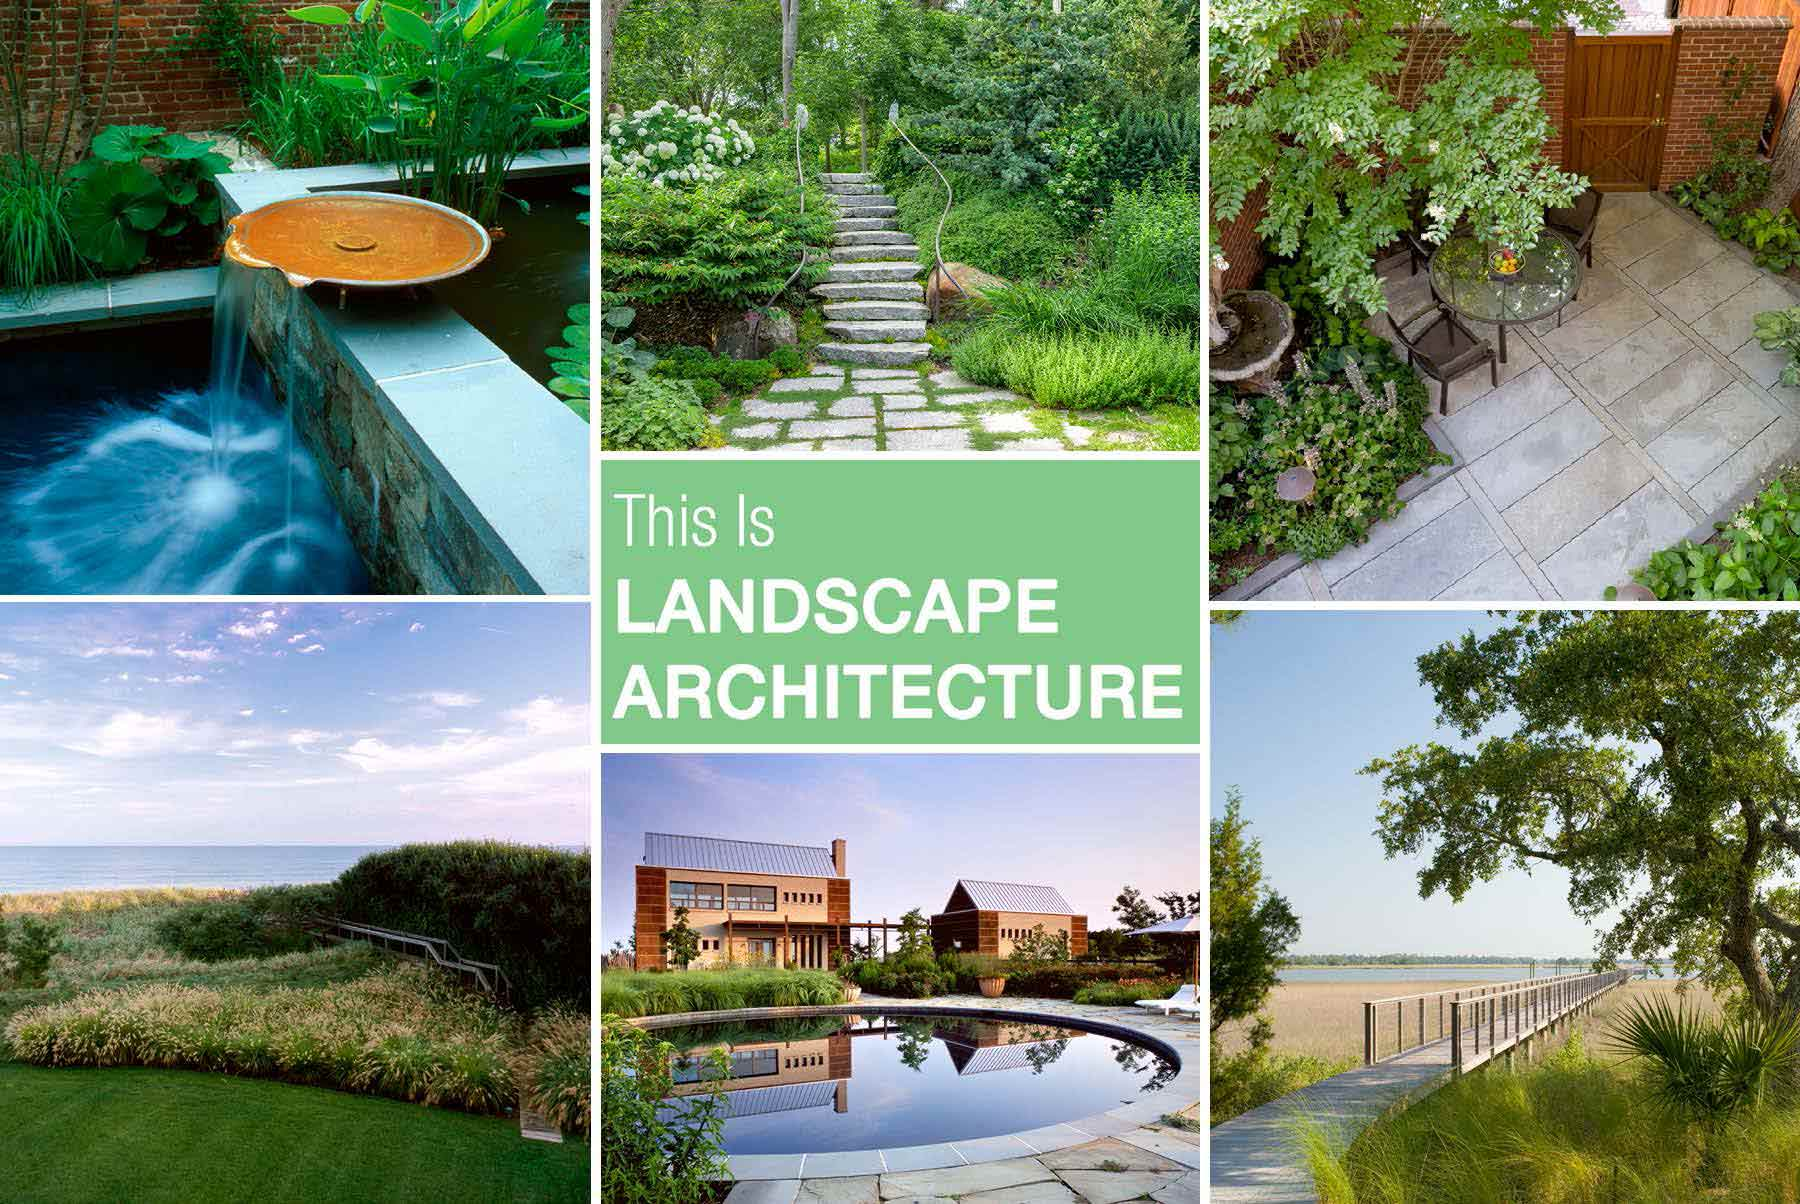 News ovs landscape architecture for American institute of landscape architects